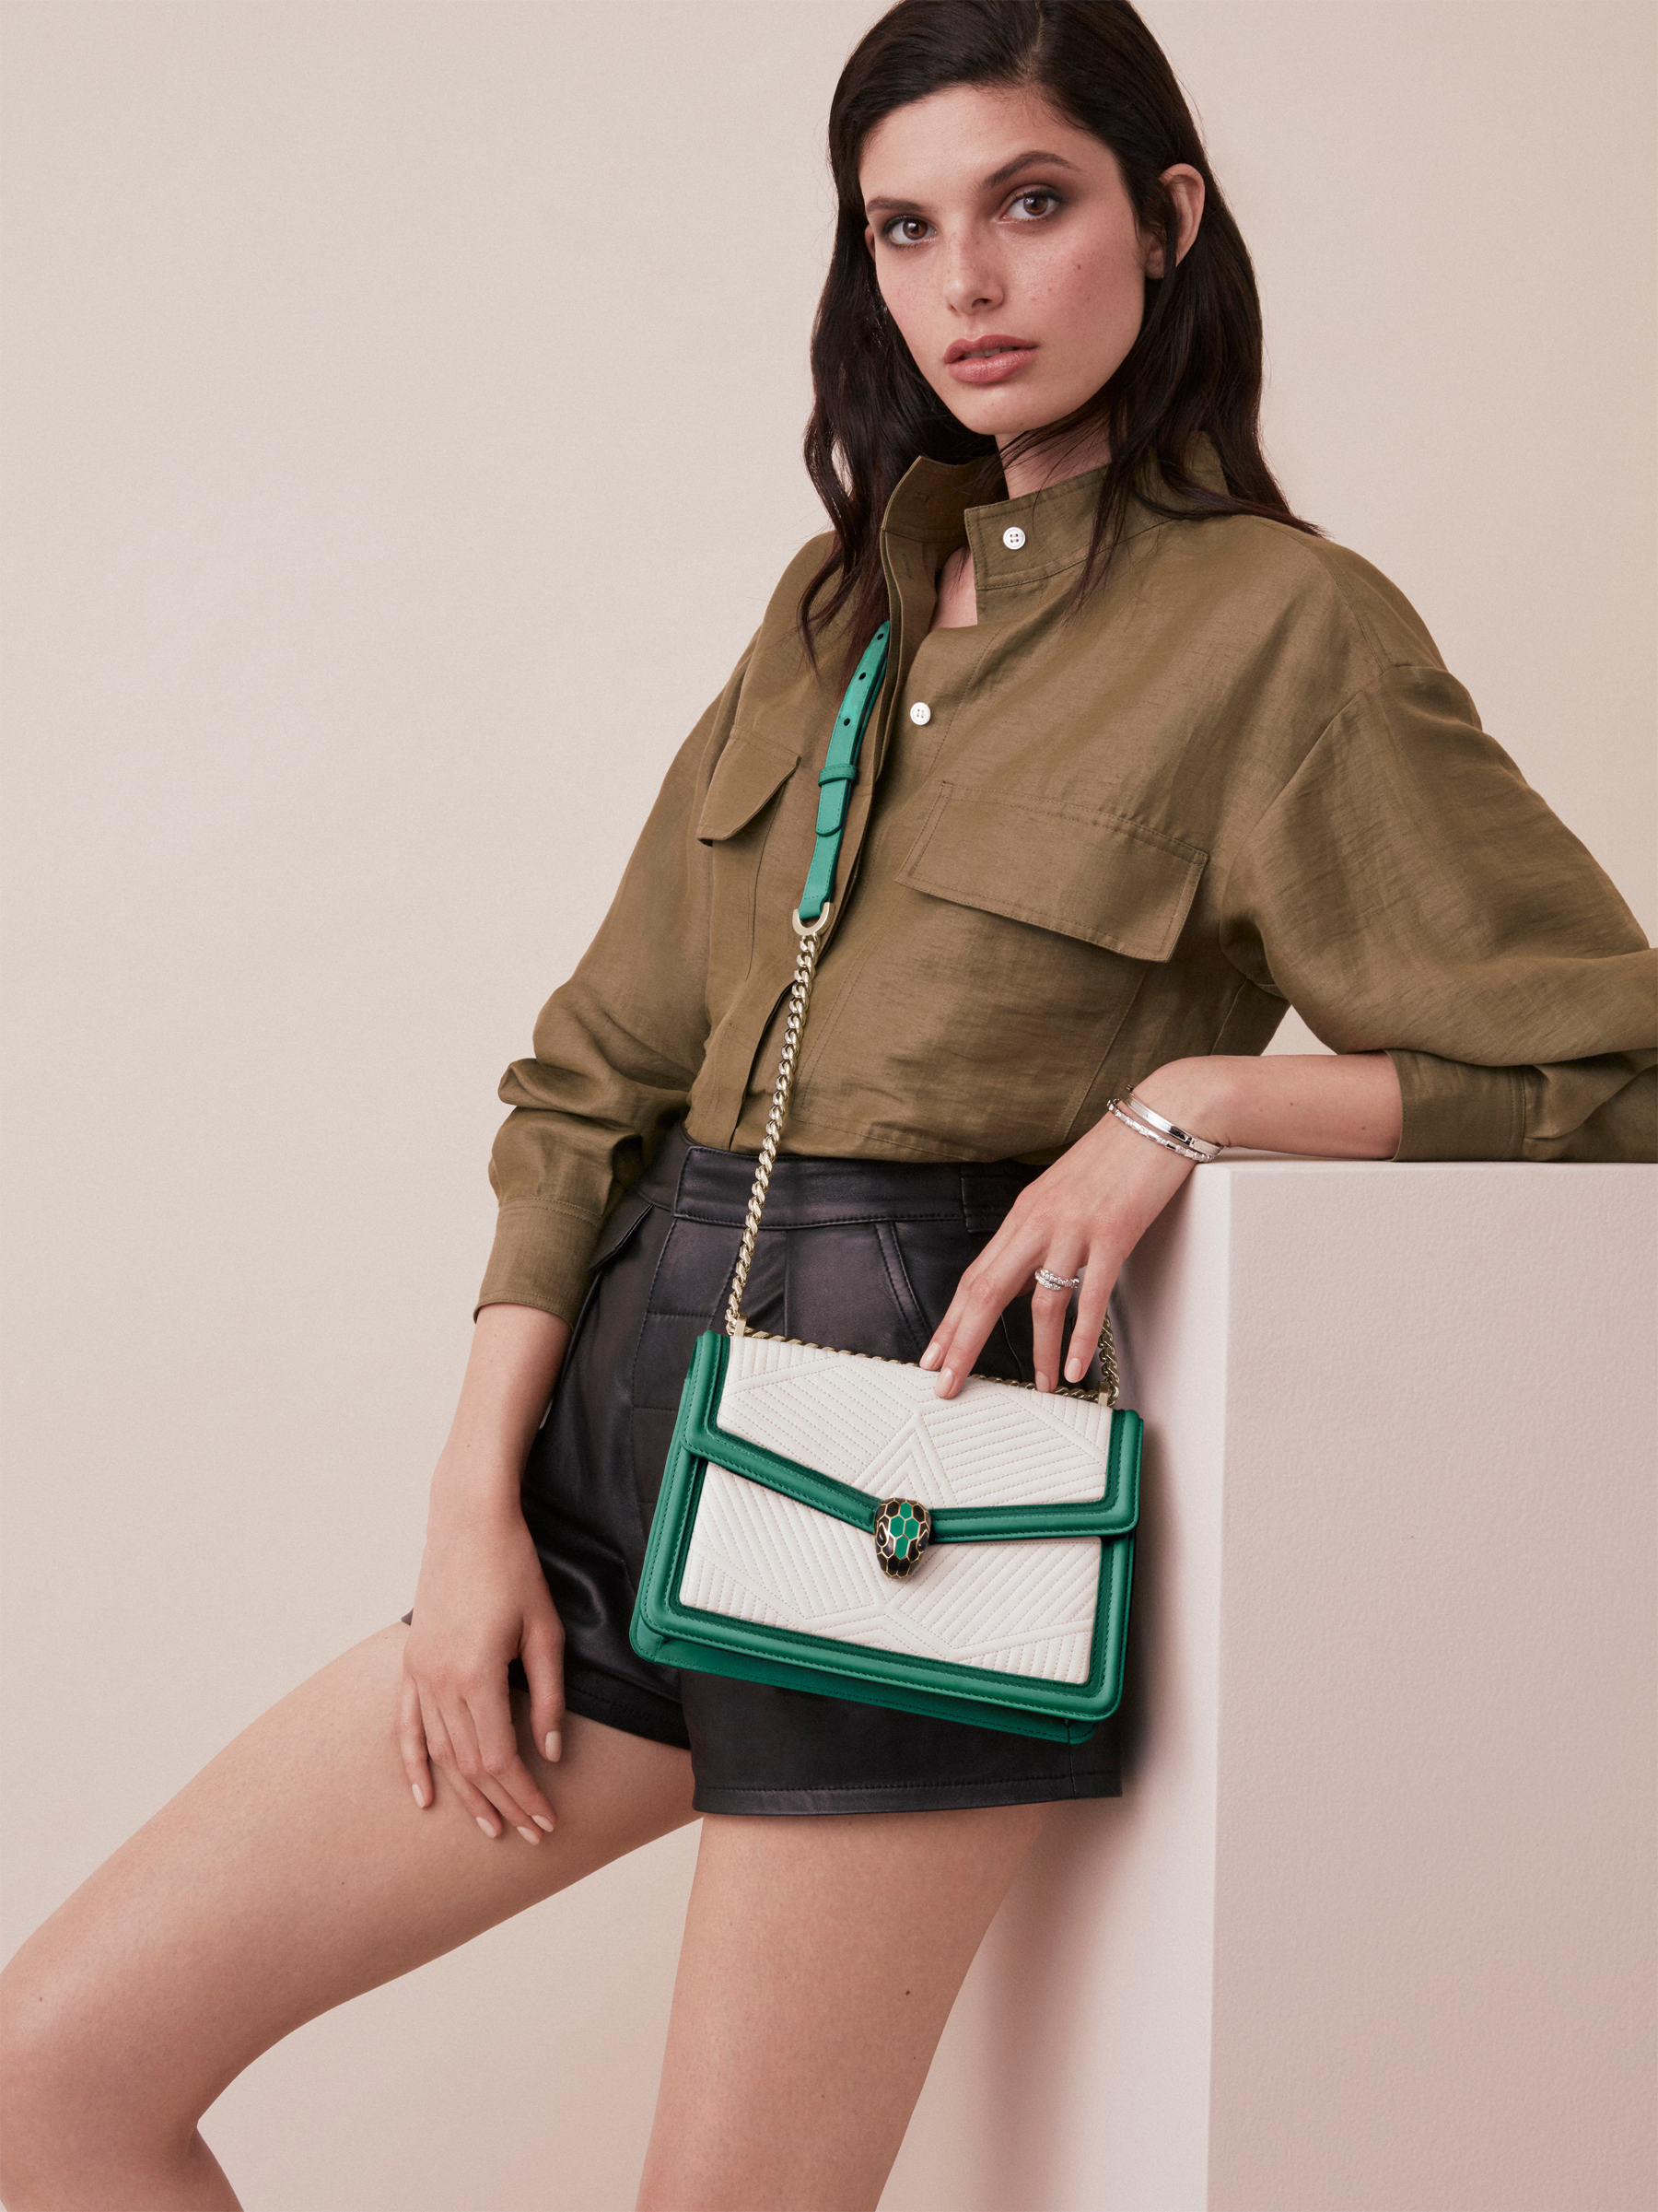 """Serpenti Diamond Blast"" shoulder bag in mimetic jade quilted nappa leather and mimetic jade smooth calf leather frames. Iconic snakehead closure in light gold plated brass enriched with matte black and shiny mimetic jade enamel and black onyx eyes. 922-FQDf image 5"